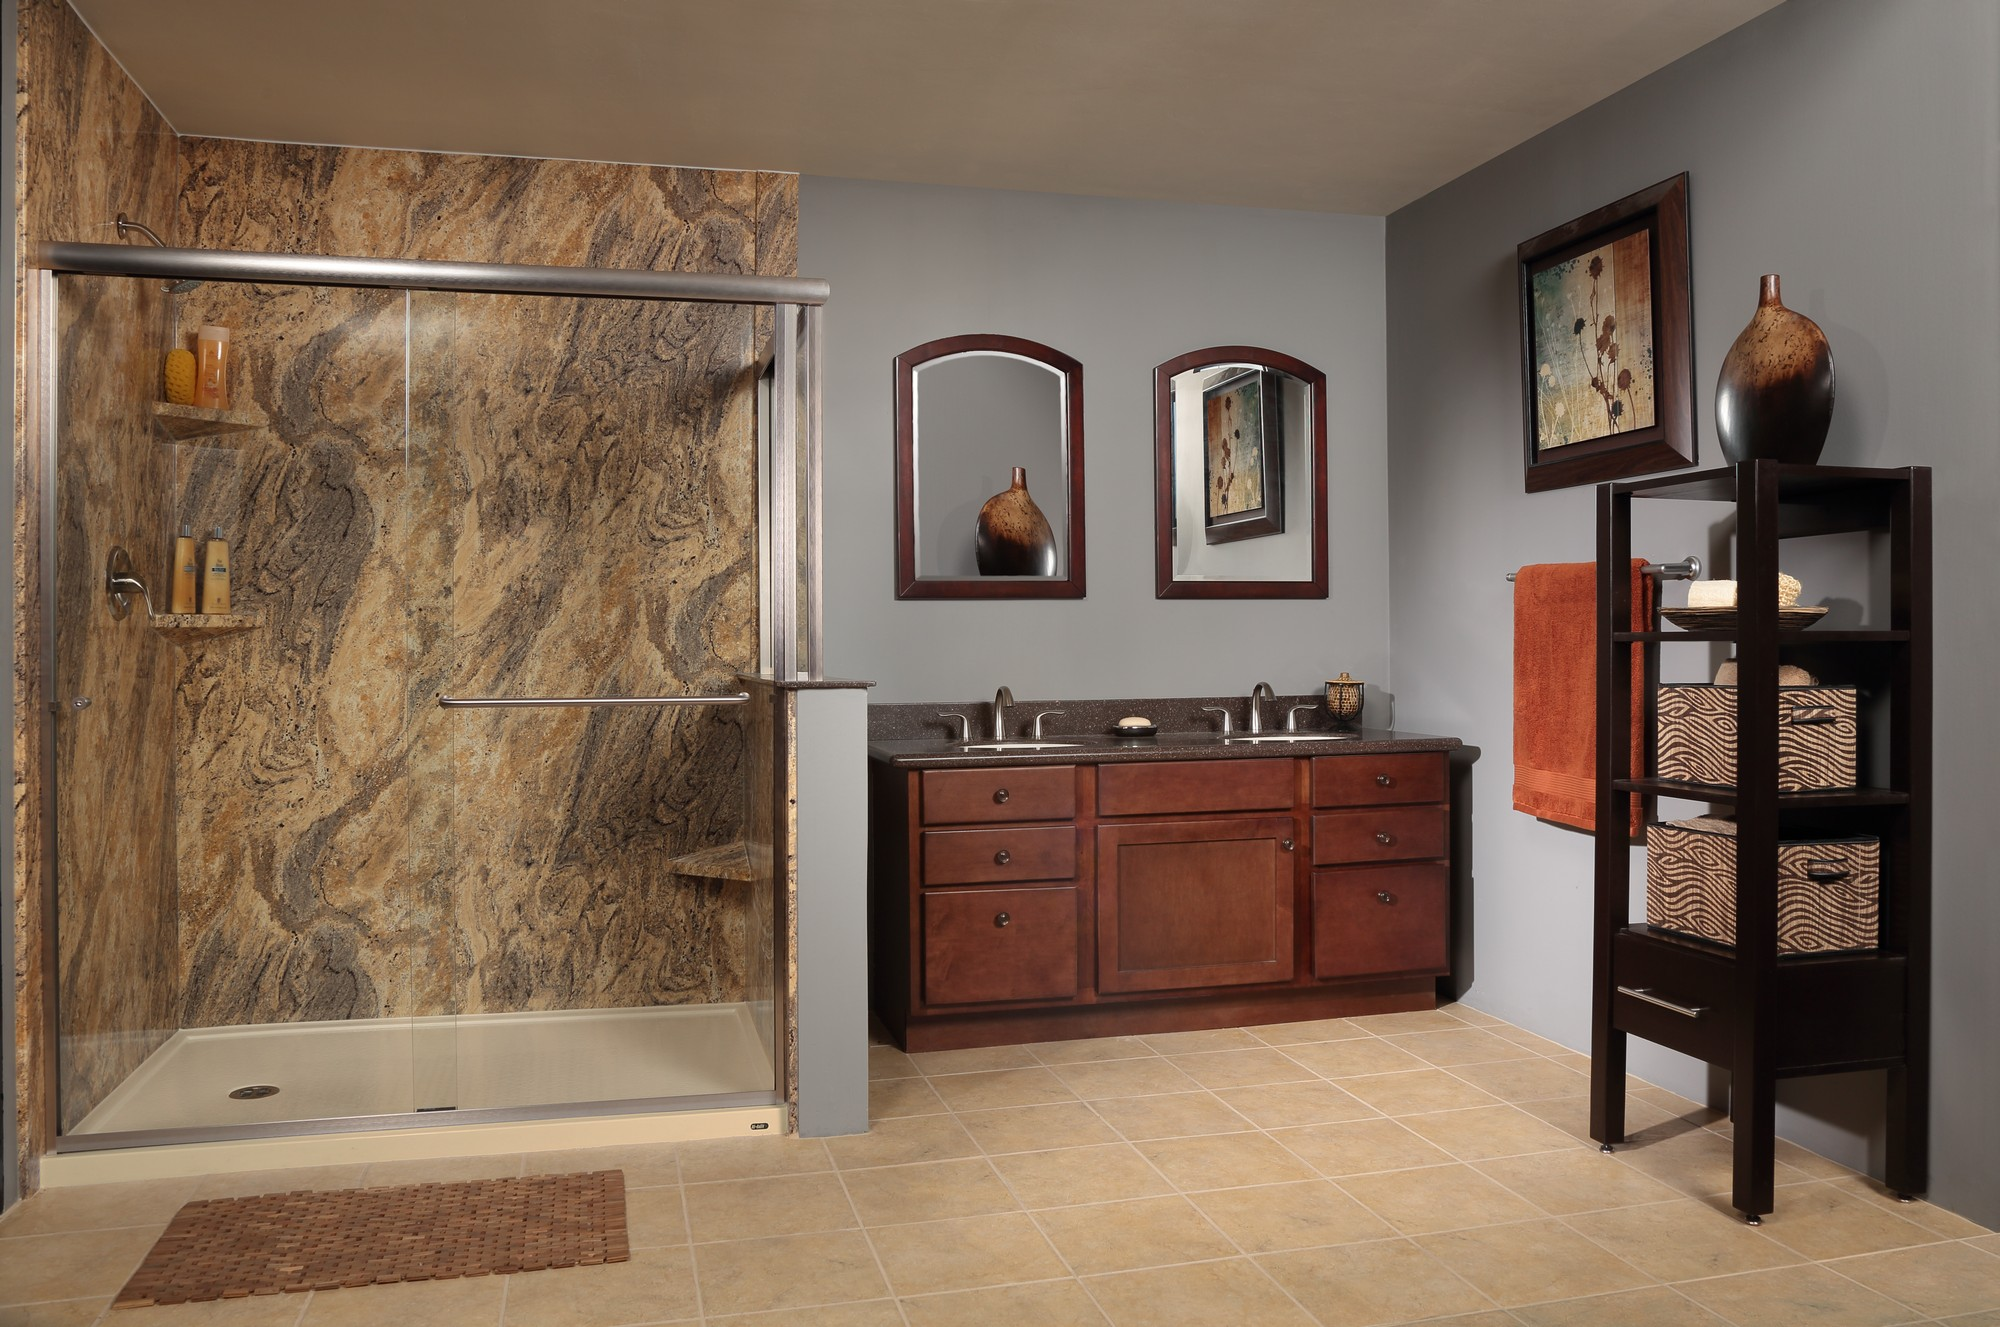 Rebath Northeast To Display New Colors At Scranton Home Show